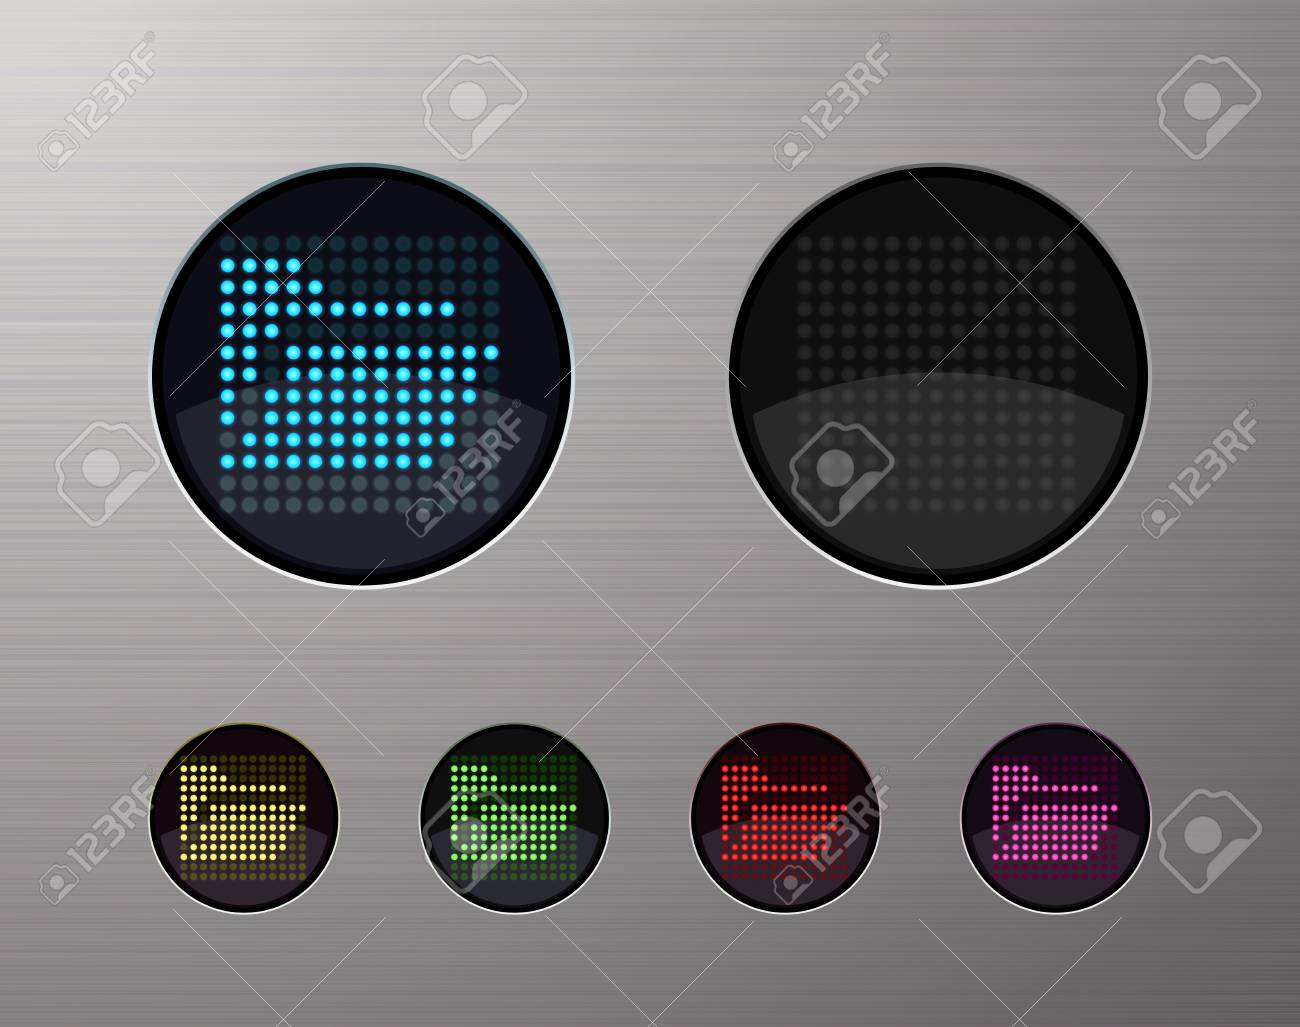 SHINY METALLIC WEB COMPUTER AND INTERNET BUTTONS Stock Vector - 15940972